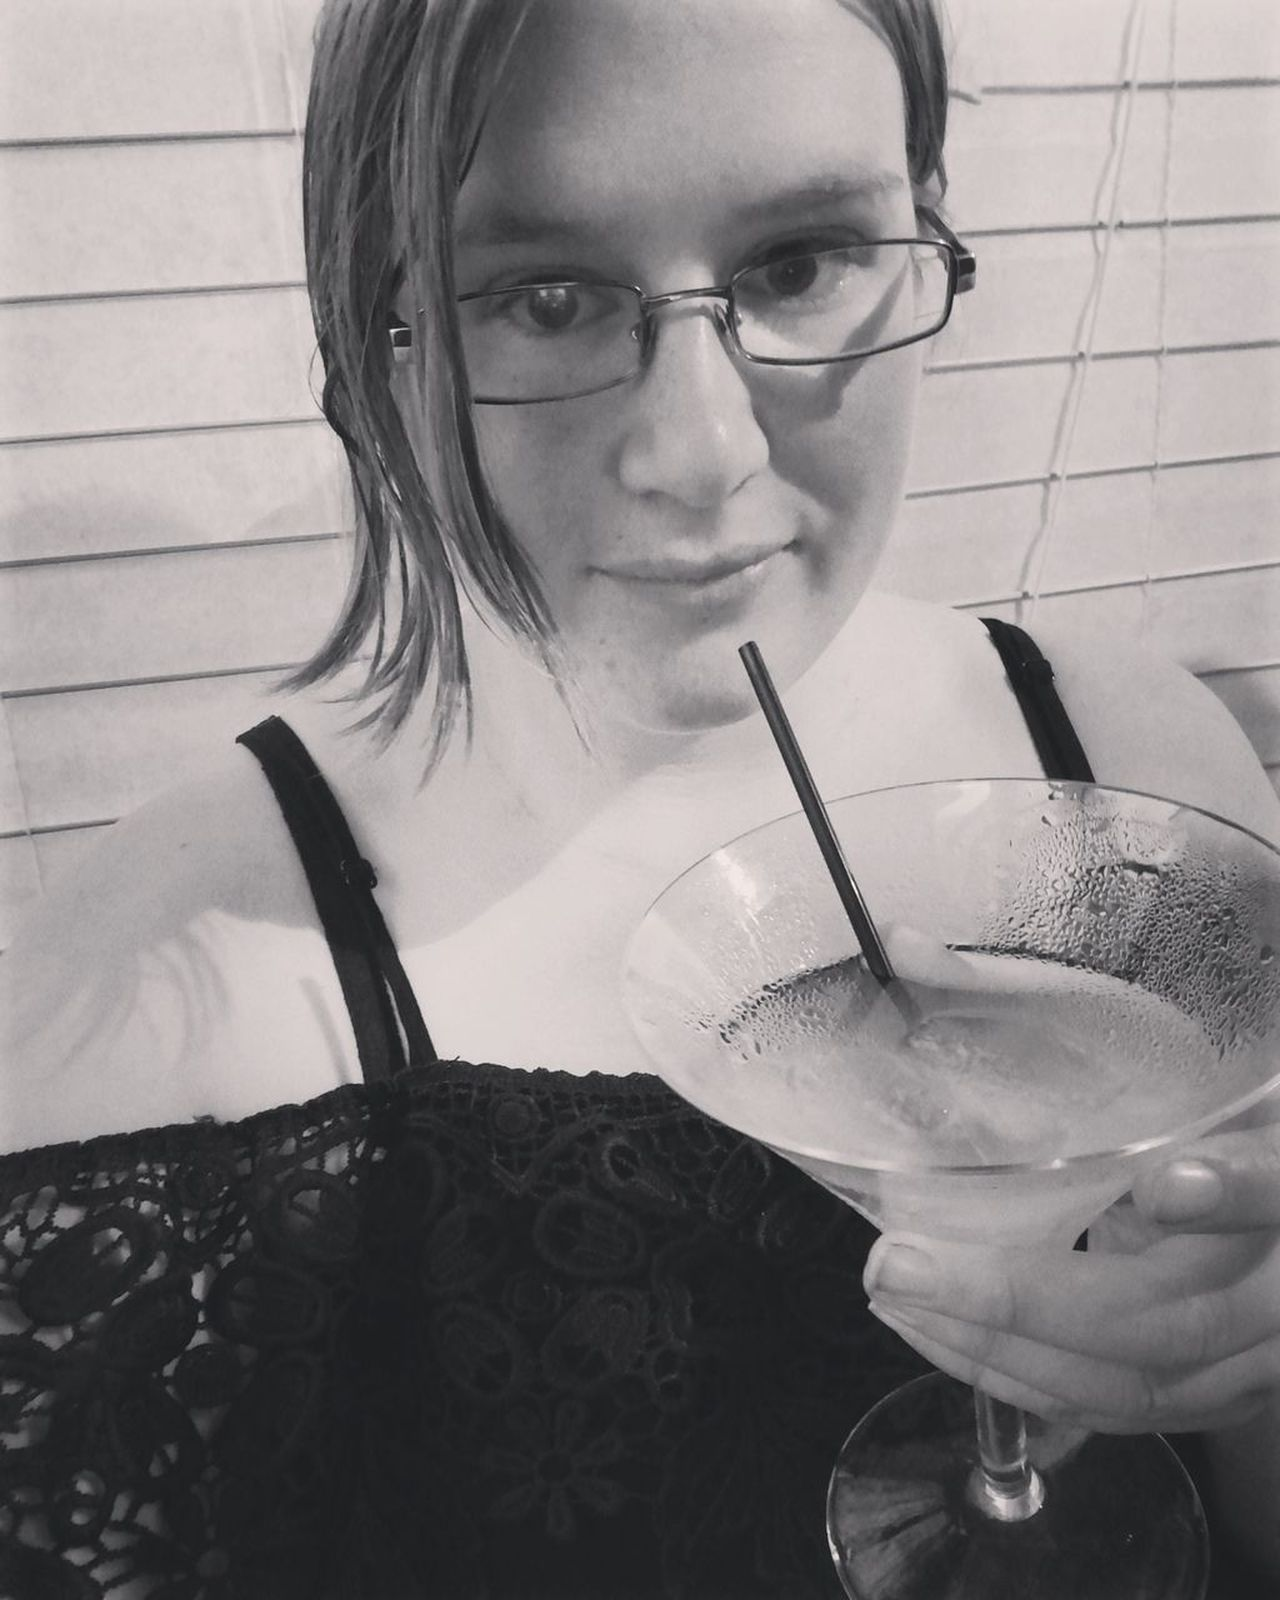 Drink Looking At Camera Portrait Drinking Straw Drinking Glass One Person Close-up Women Human Face Cocktails🍹🍸 Relax❤️ Selfie😎 Me :)  Woman Portraits BlackDress Bkackandwhite